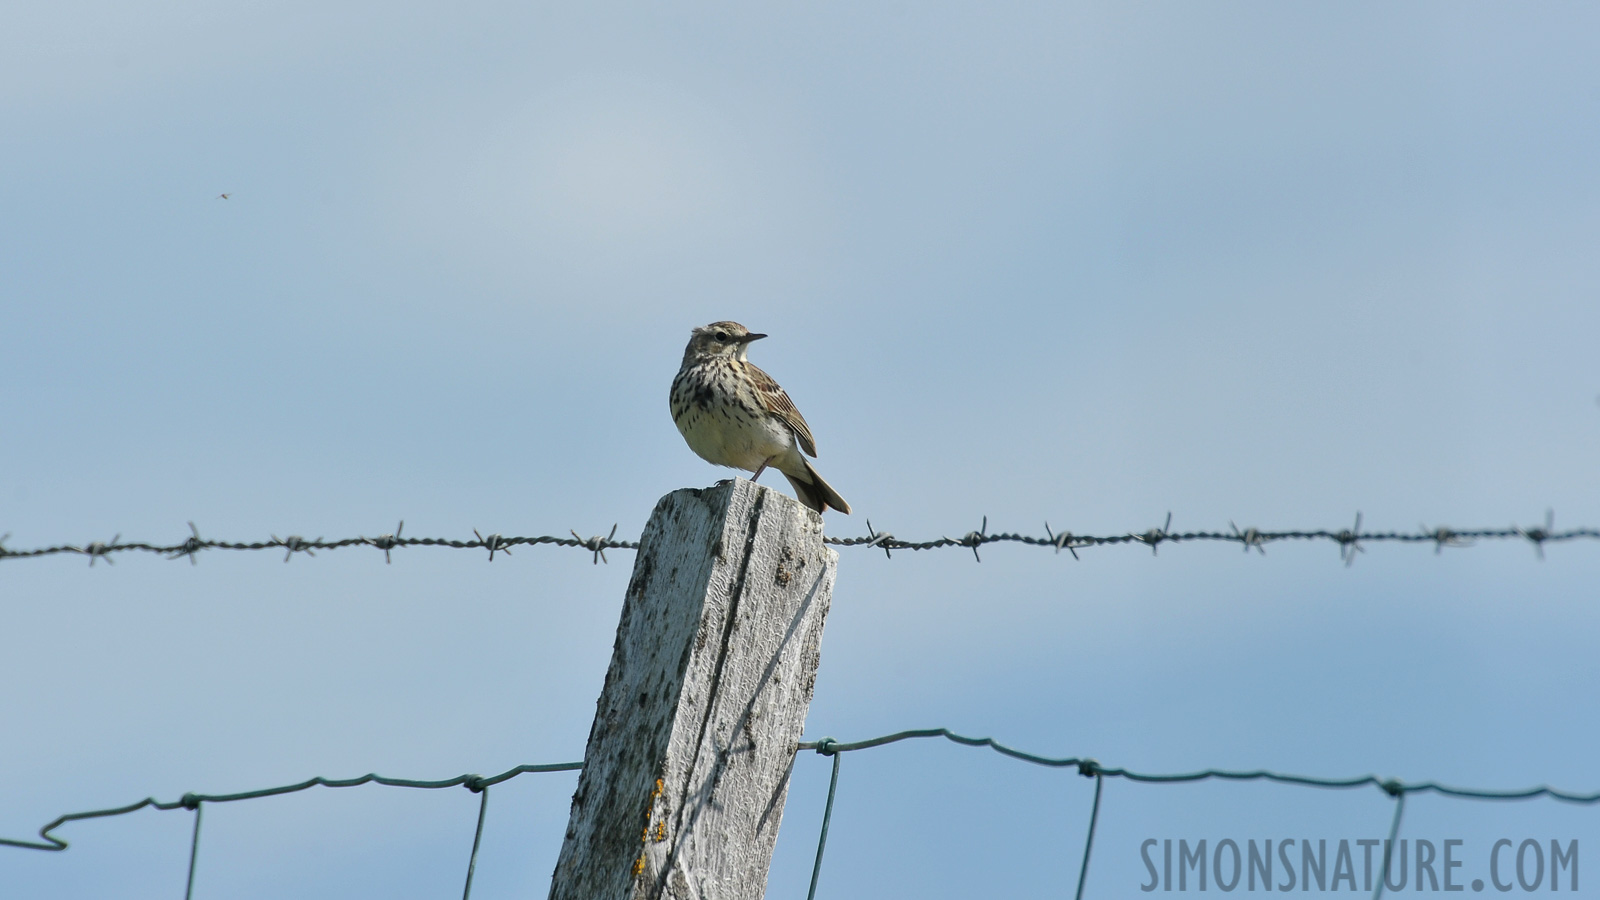 Meadow pipit [Anthus pratensis]